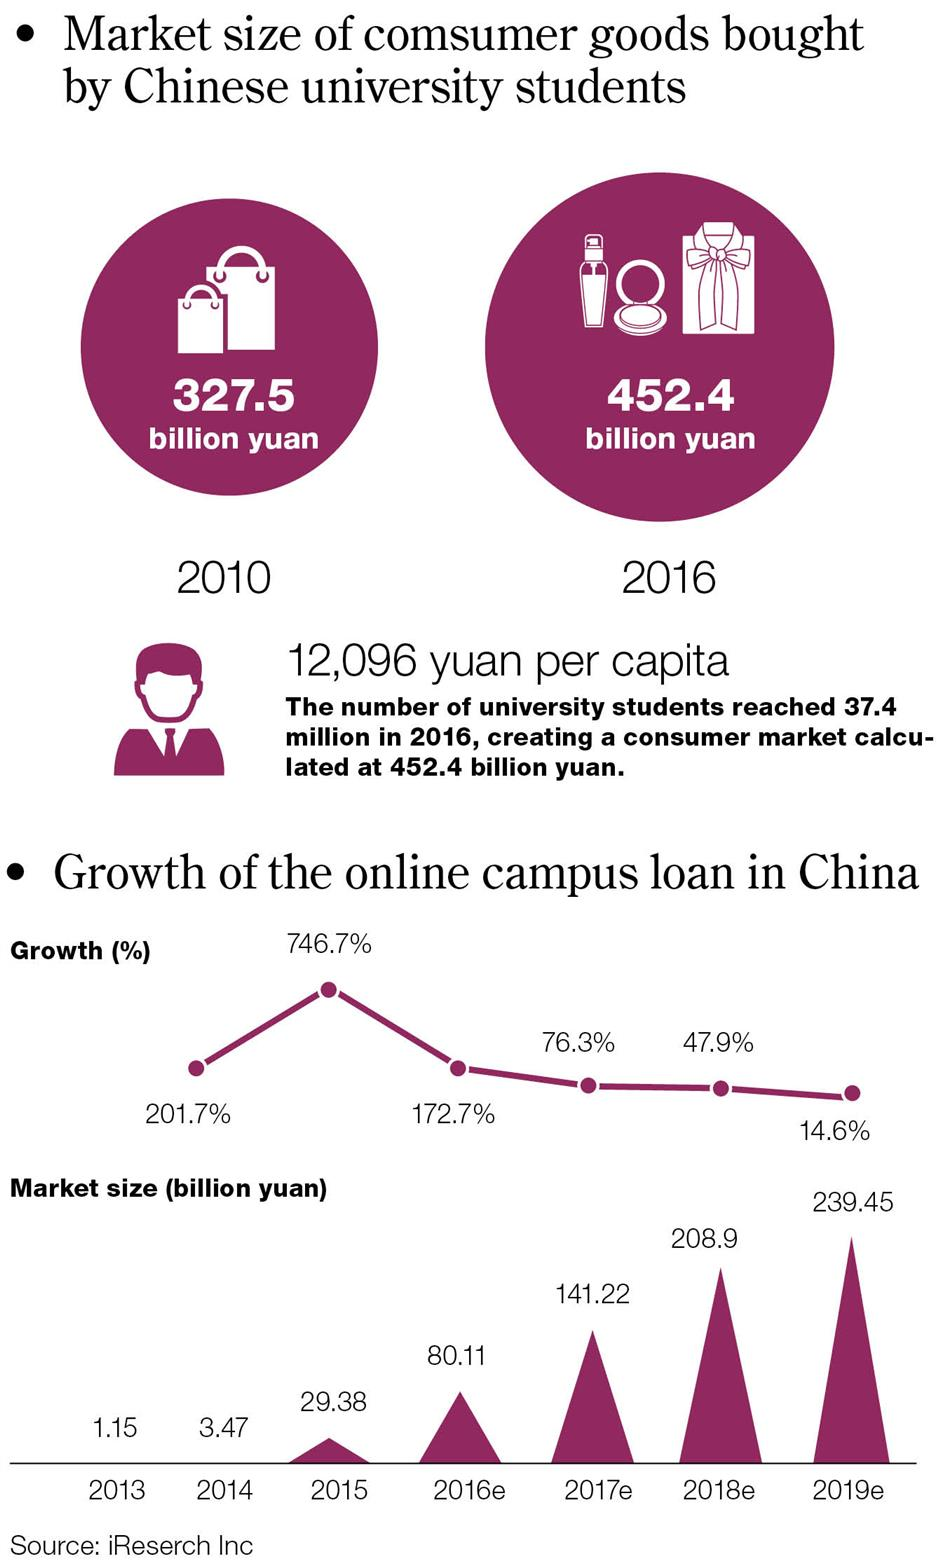 Campuses serve as fertile ground for lenders